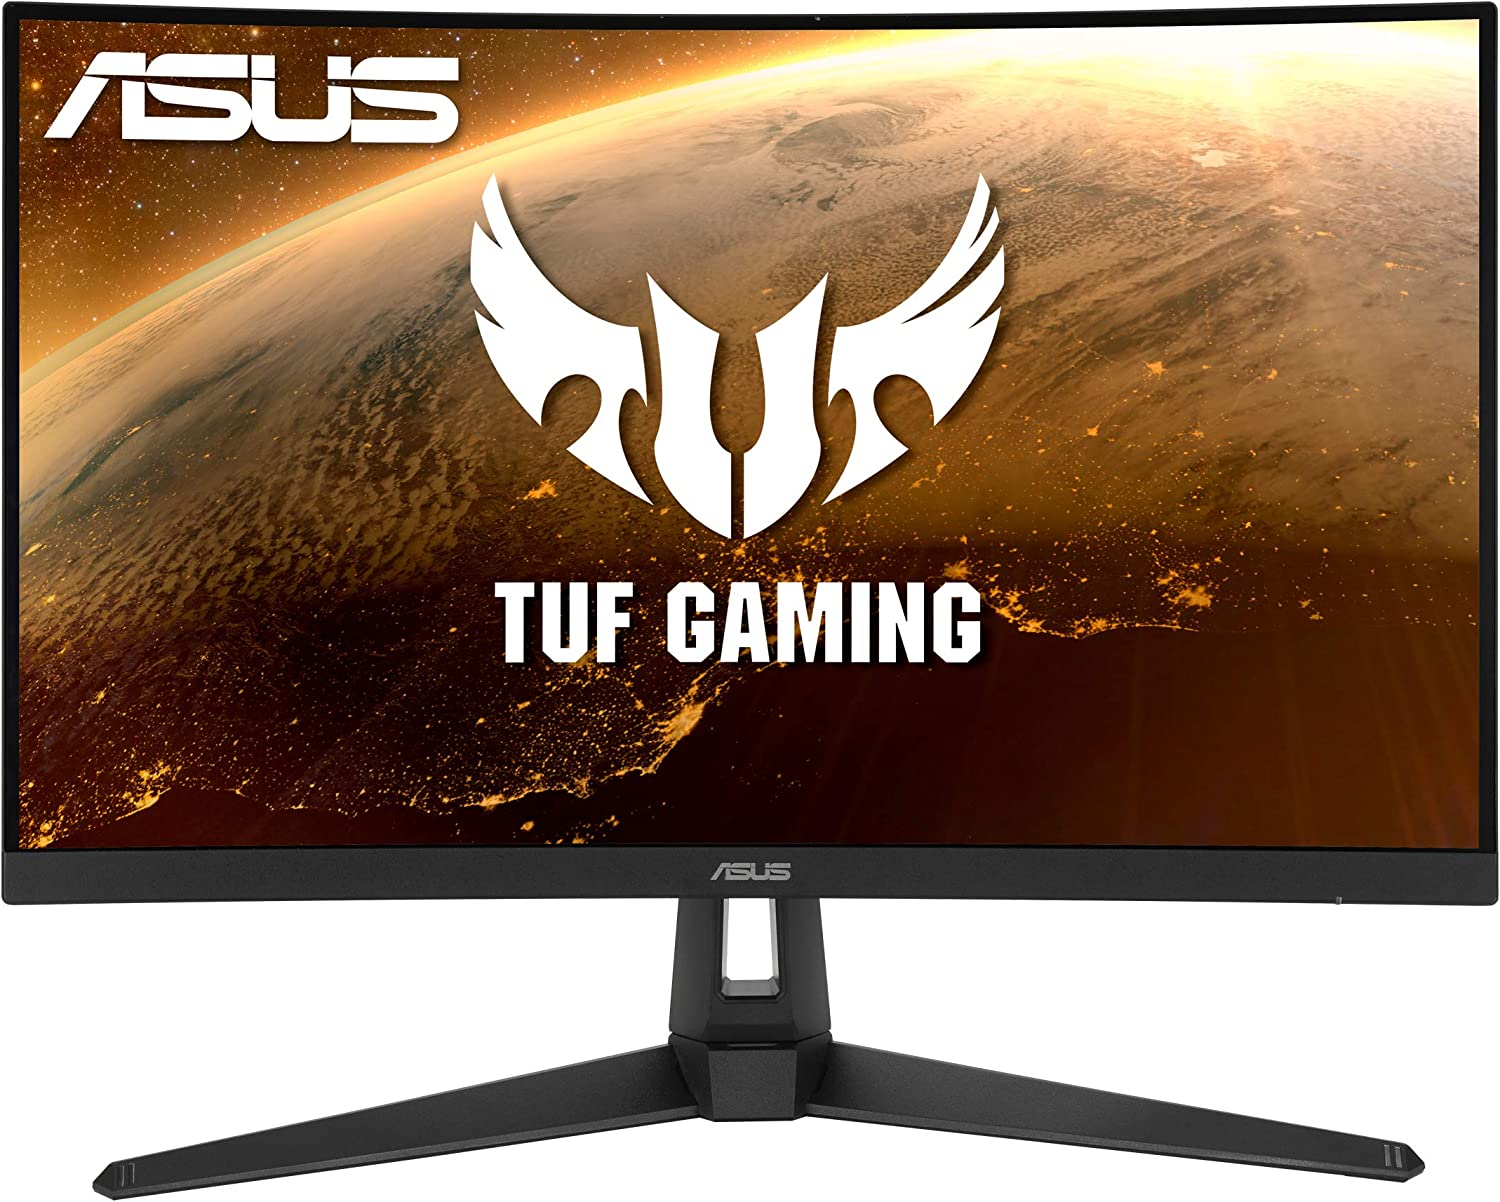 Amazon Com Asus Tuf Gaming Vg27vh1b 27 Curved Monitor 1080p Full Hd 165hz Supports 144hz Extreme Low Motion Blur Adaptive Sync Freesync Premium 1ms Eye Care Hdmi D Sub Black Computers Accessories